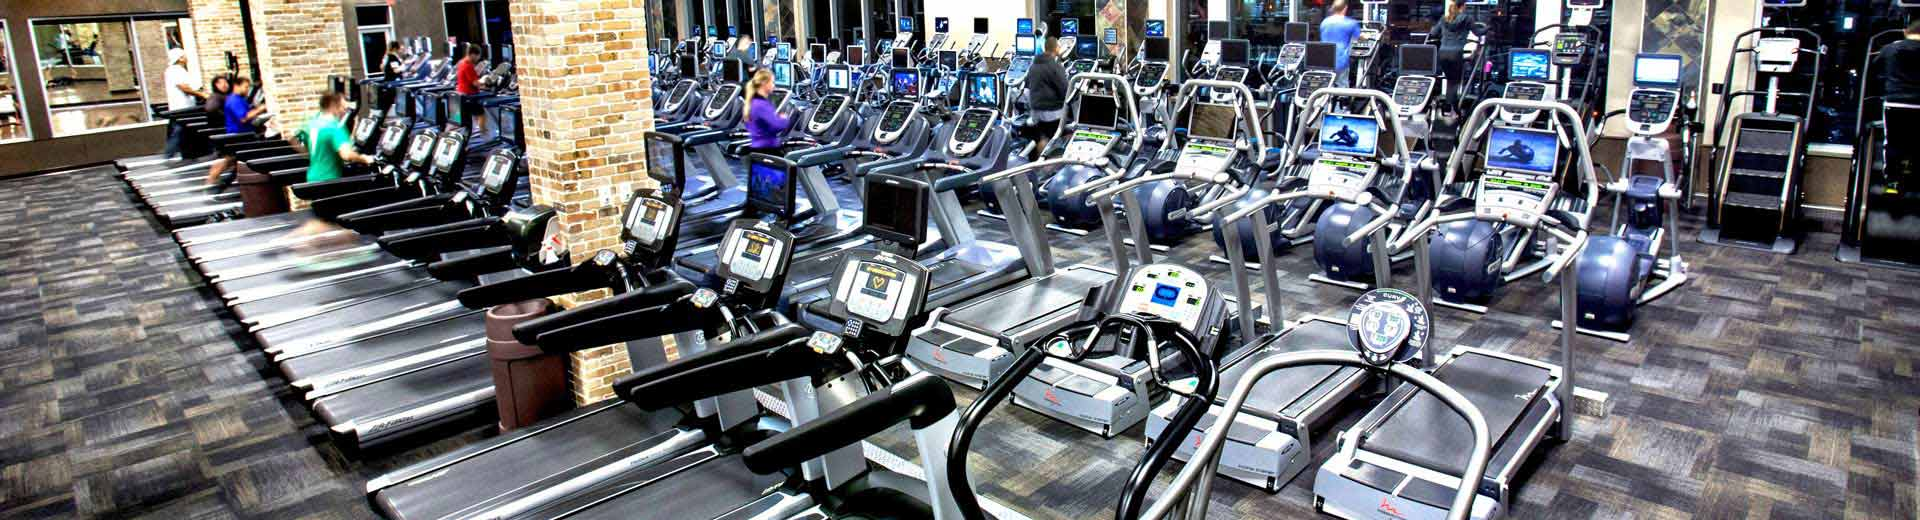 chicago logan square gym amenities | xsport fitness